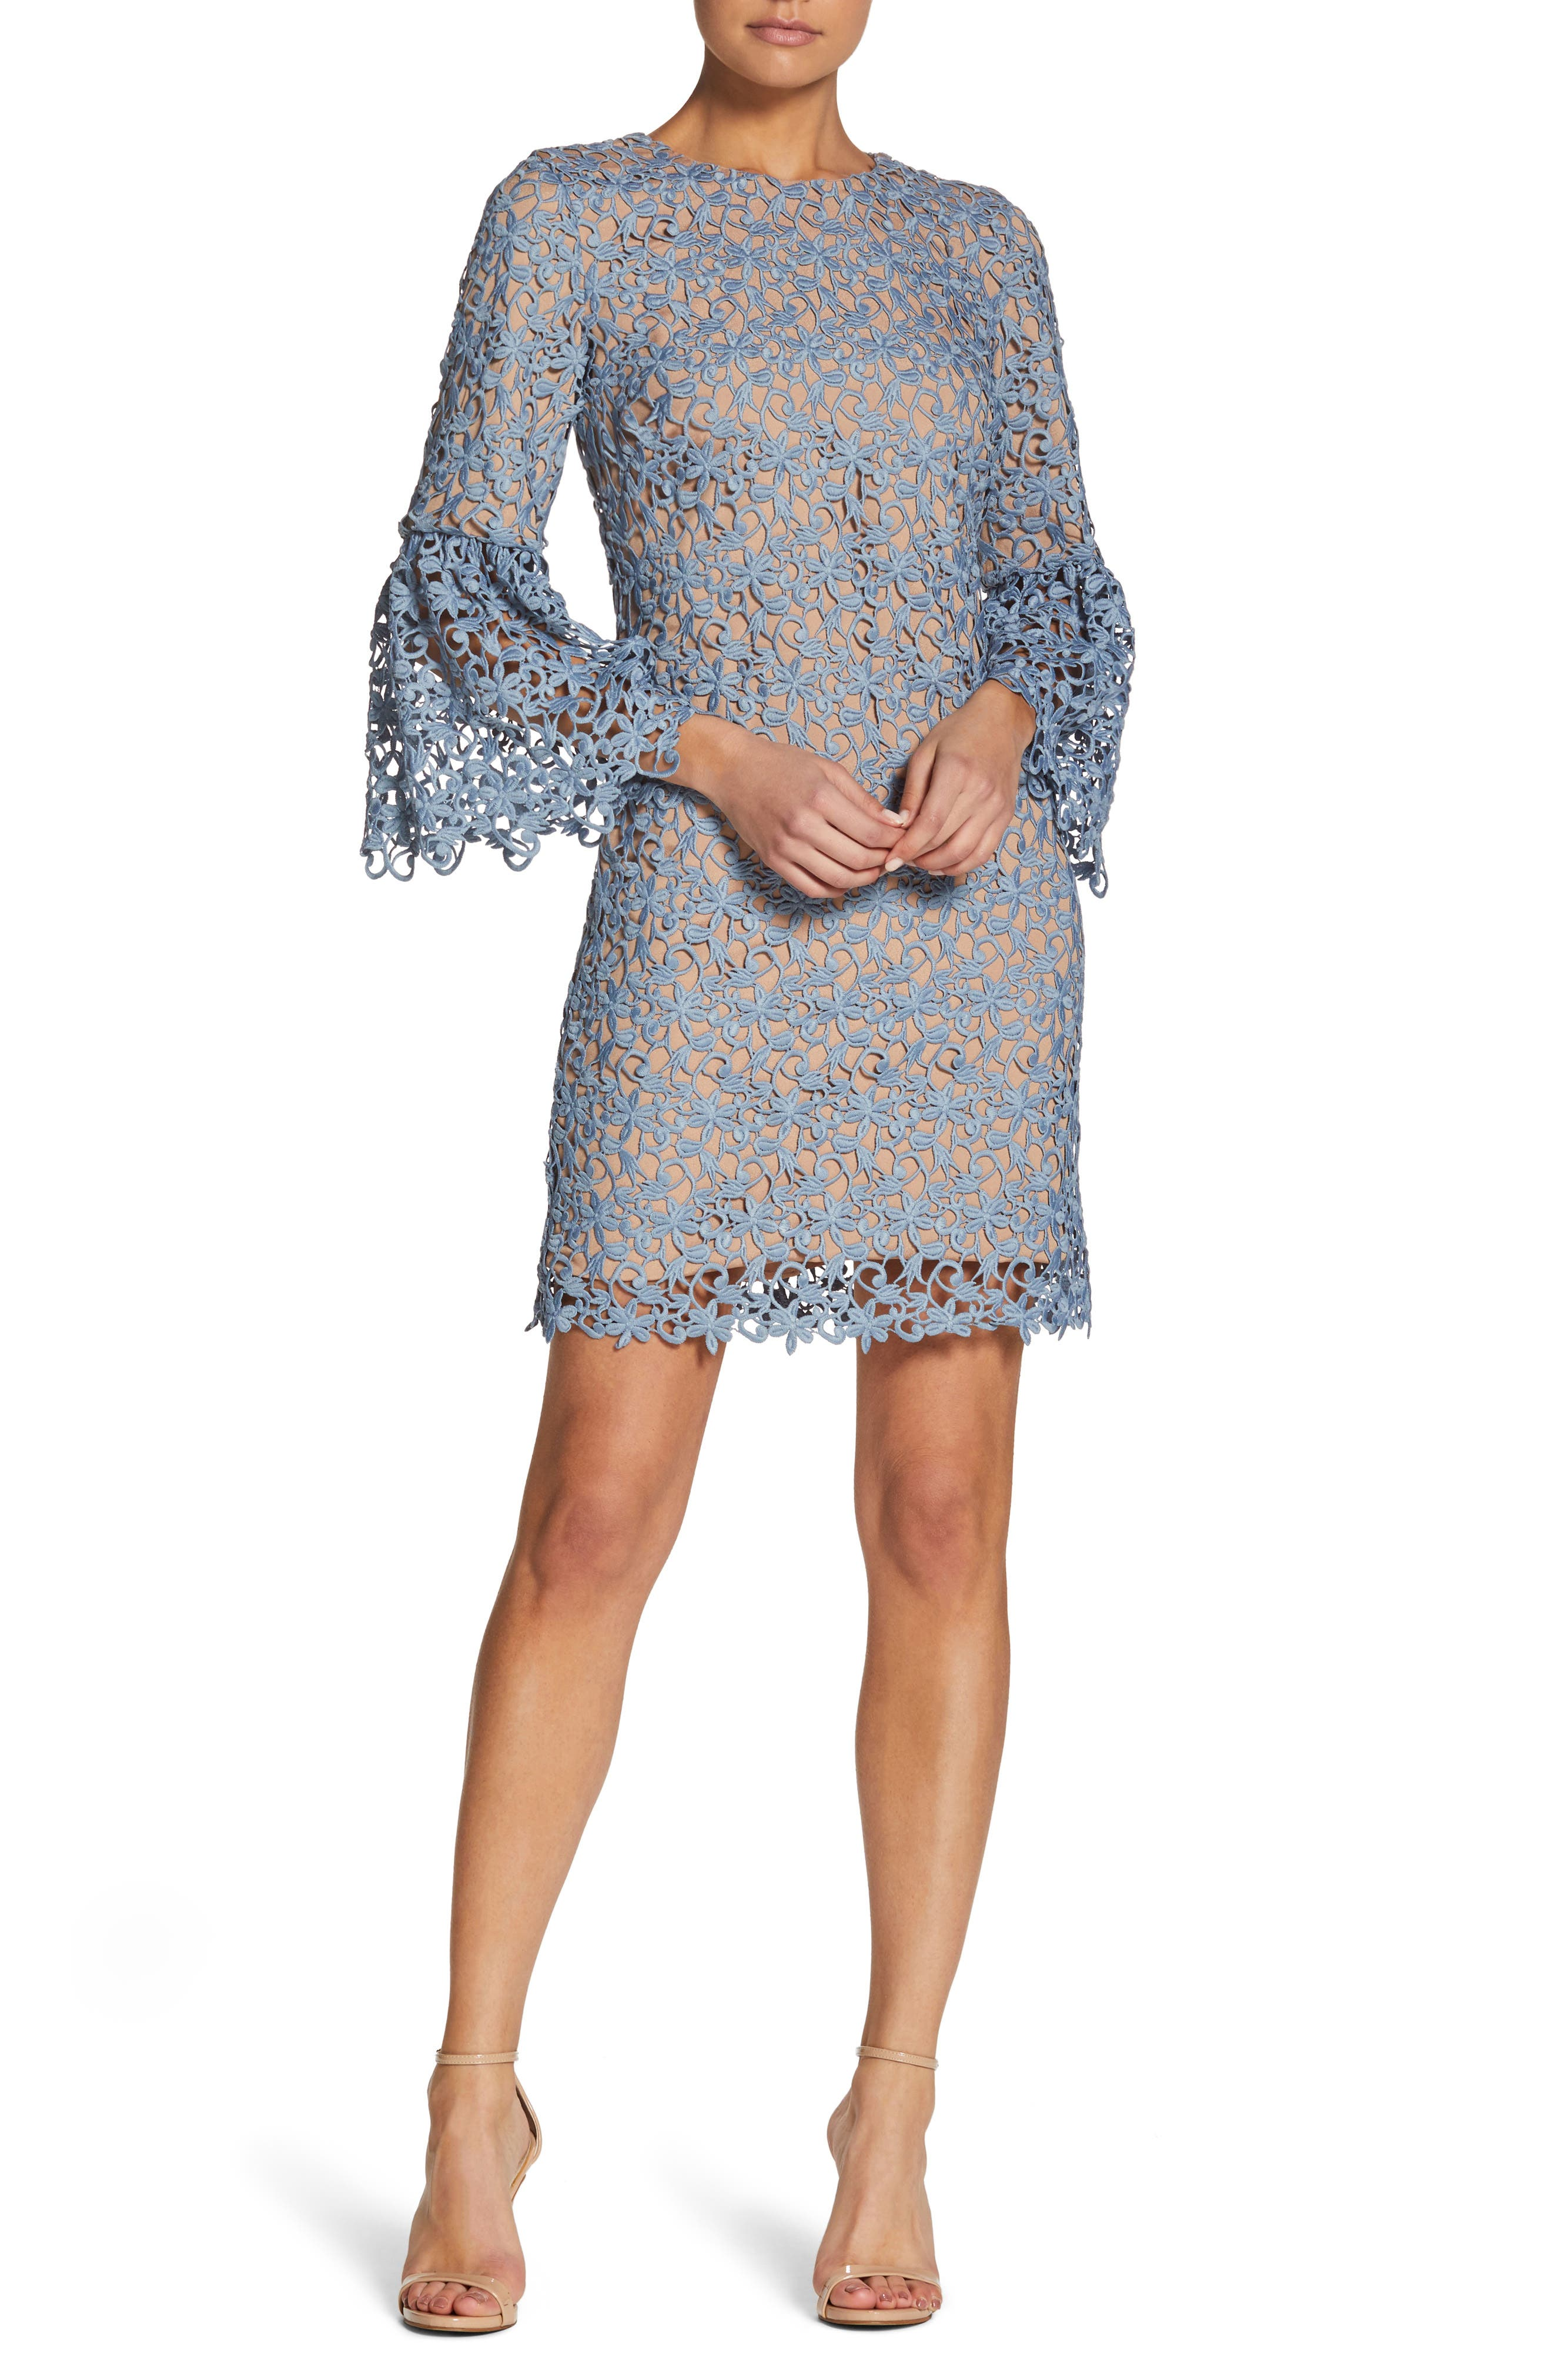 Paige Crochet Shift Dress,                             Main thumbnail 1, color,                             Mineral Blue/ Nude